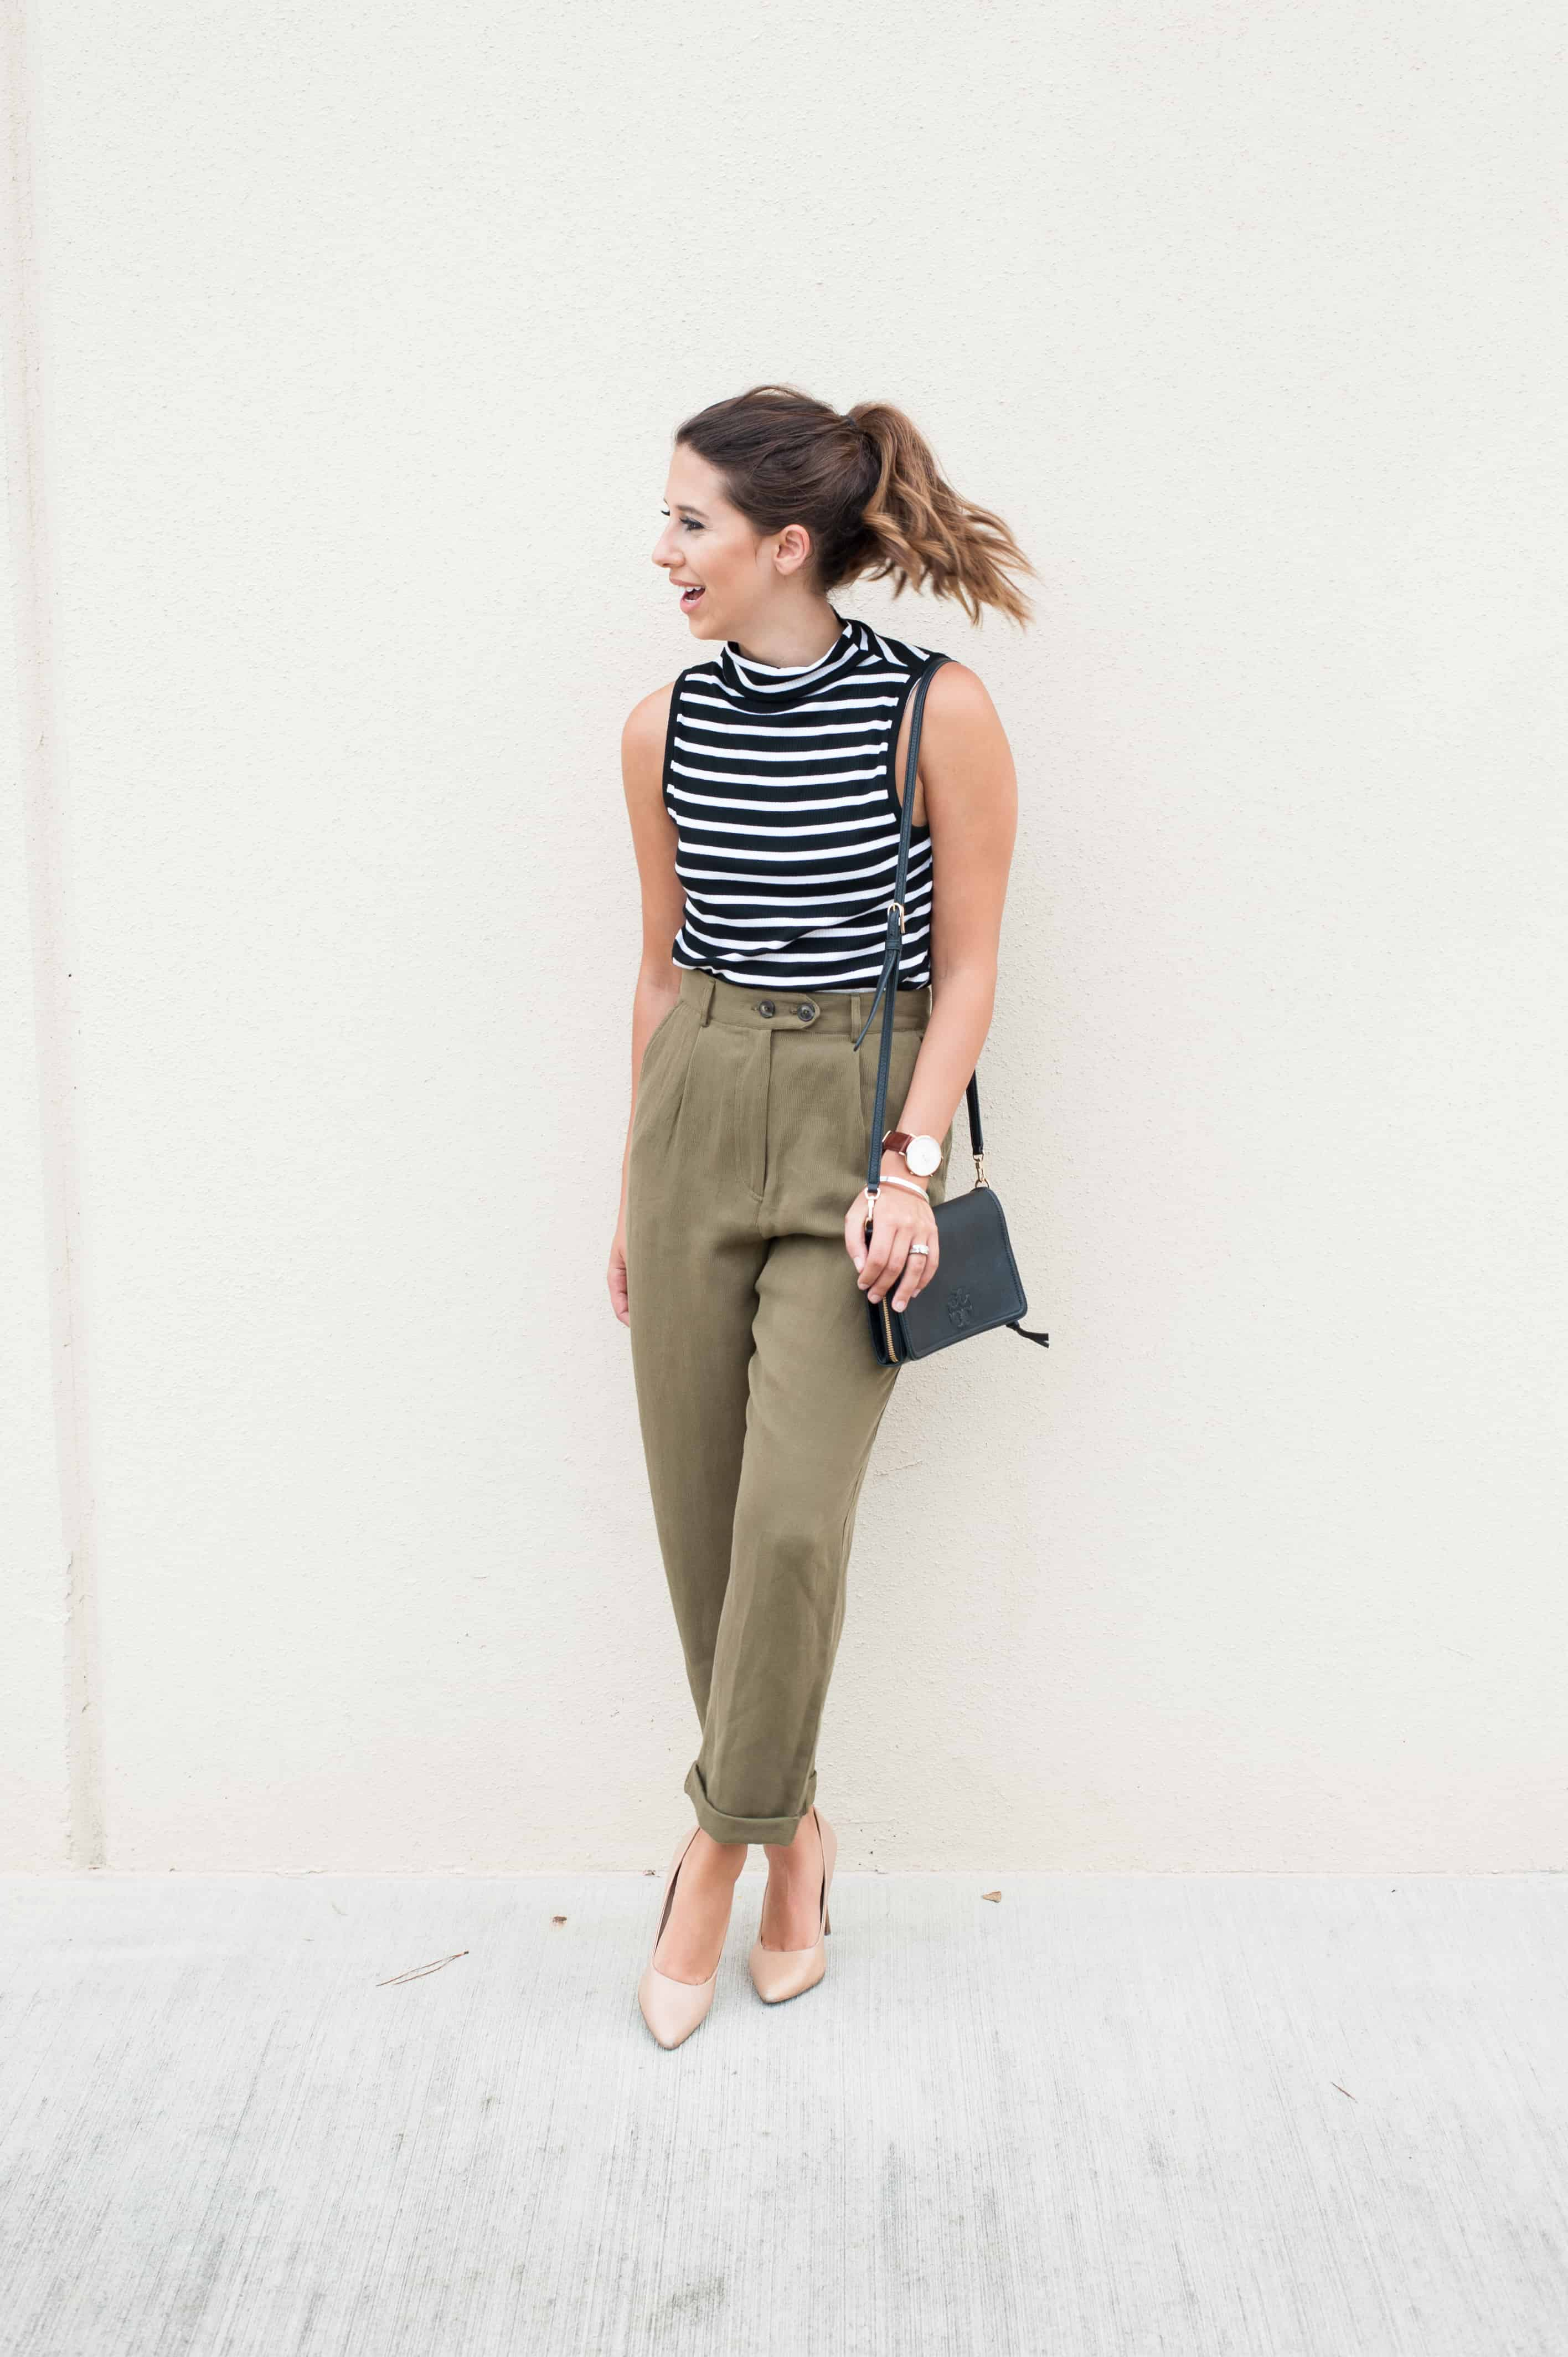 Dress Up Buttercup   Houston Fashion and Travel Blog - Dede Raad   Work Week Over